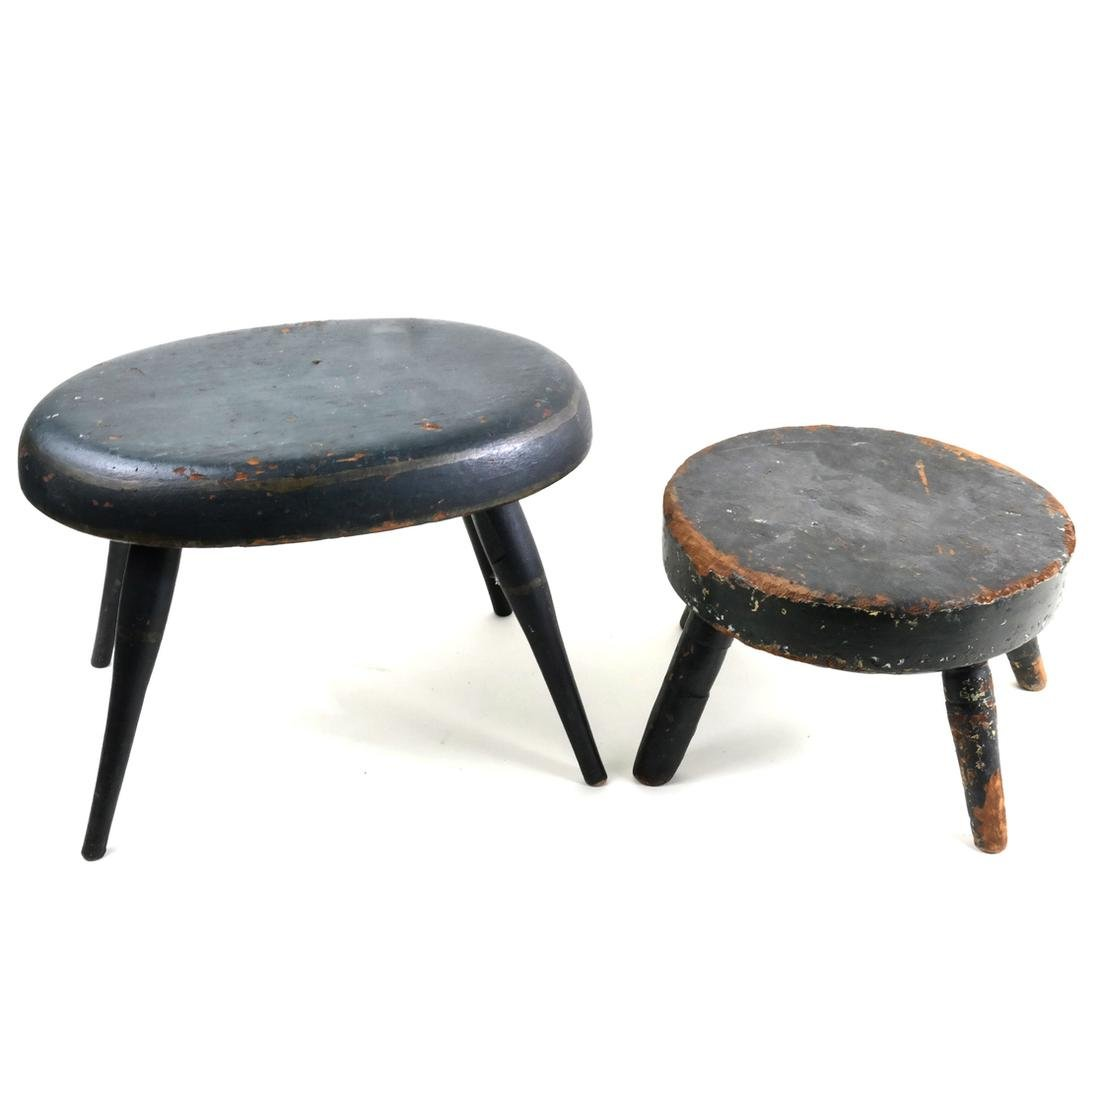 Two Antique American Stools